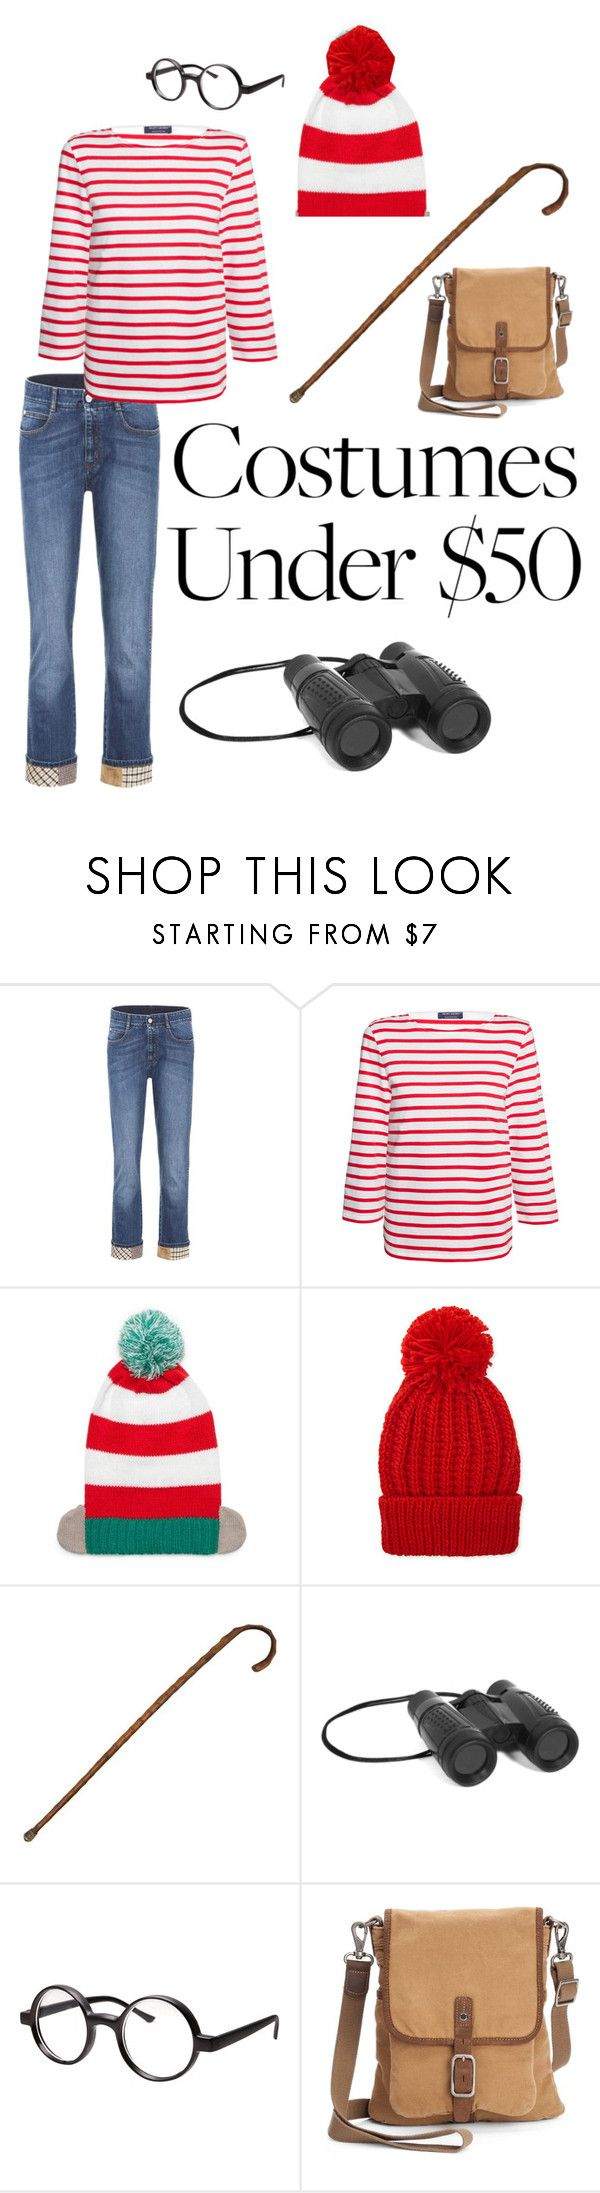 """""""Where's ....?"""" by rebeccalange ❤ liked on Polyvore featuring STELLA McCARTNEY, Saint James, Collection XIIX, Forever 21 and The Same Direction"""